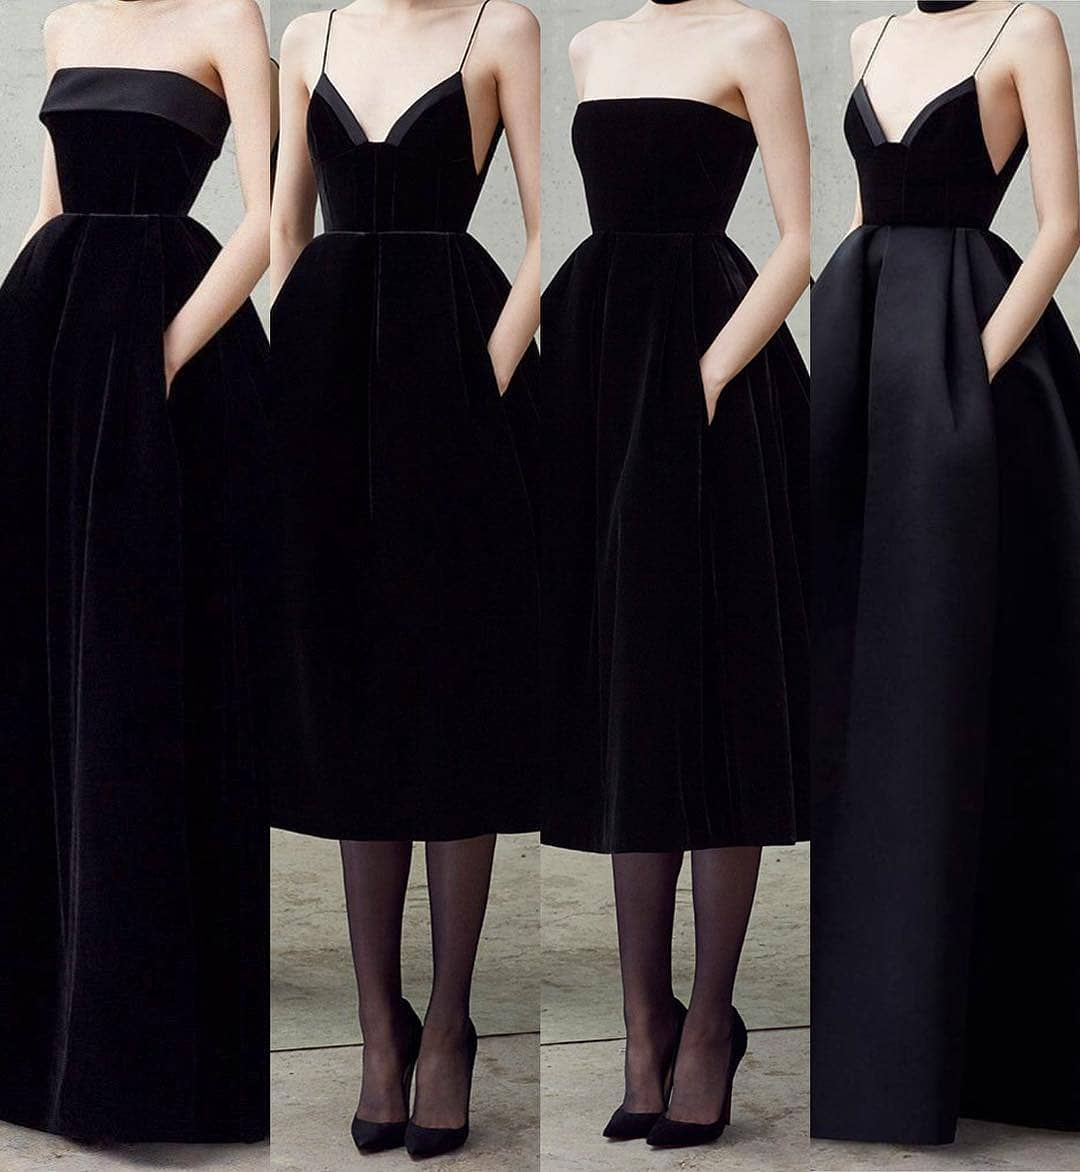 Black gowns by Alex Perry ✨